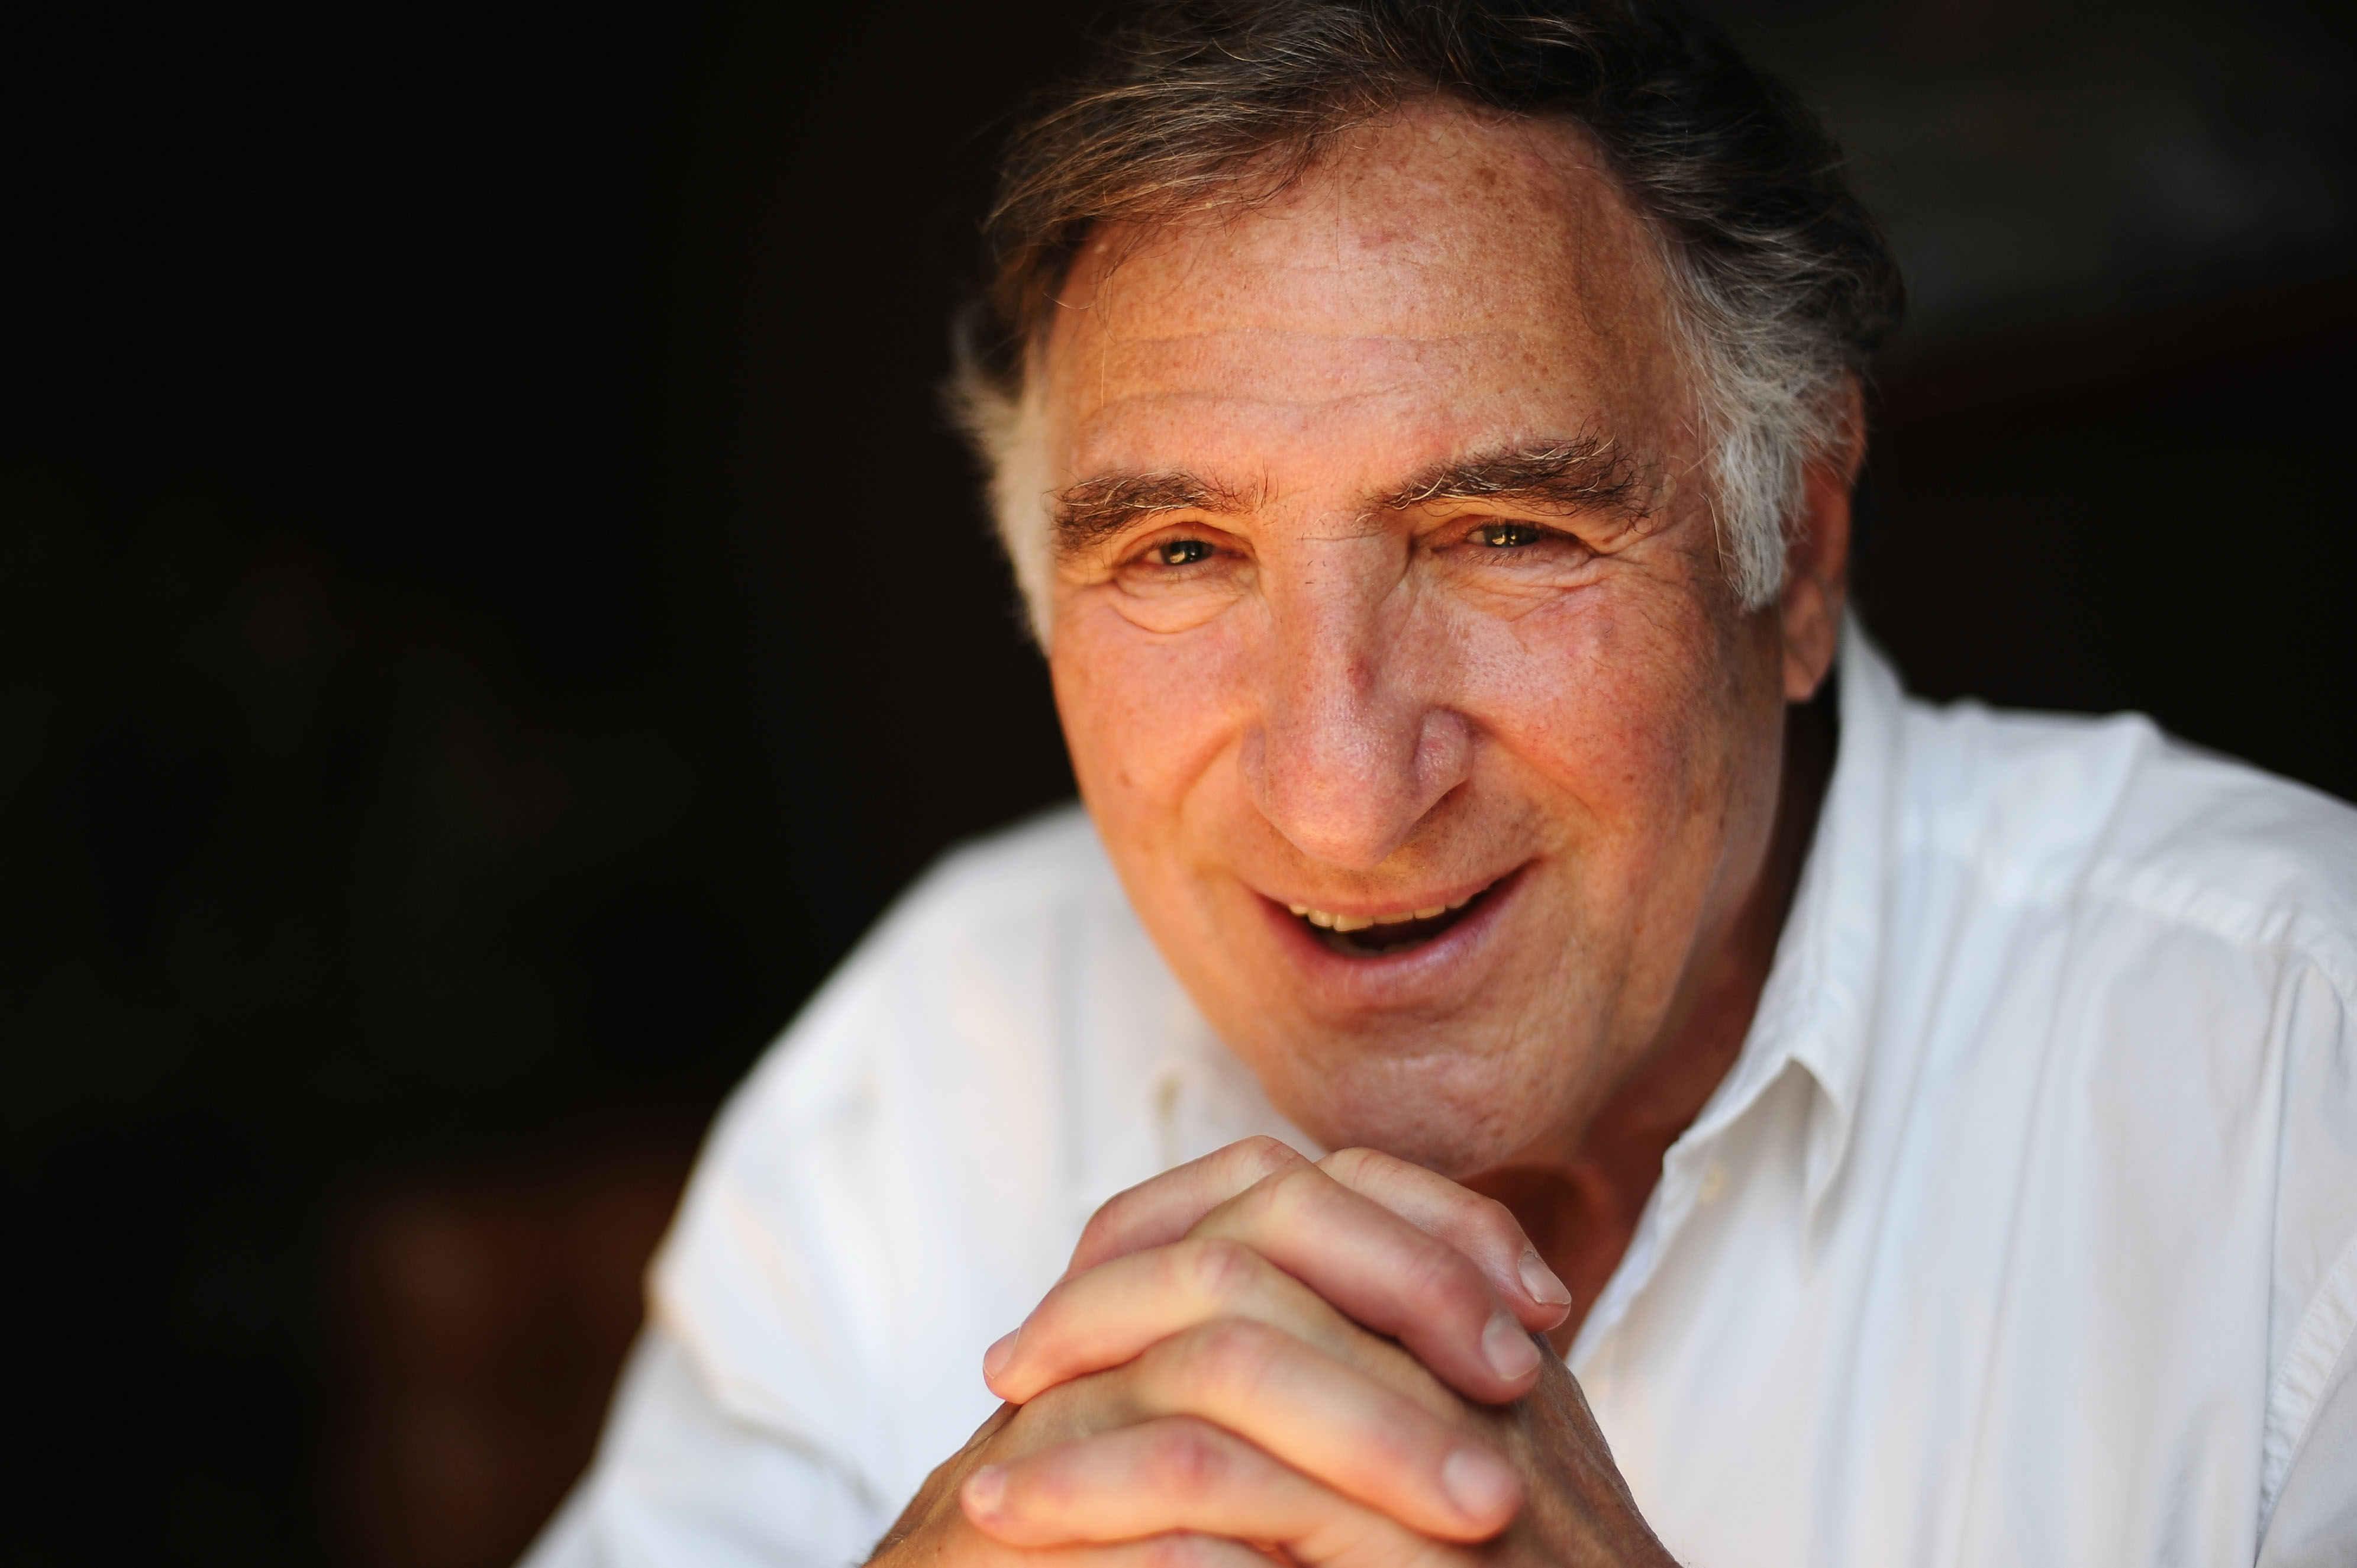 """CANNES, FRANCE - MAY 21: Actor Judd Hirsch from the film """"This Must Be The Place"""" poses for a portrait session at Plage Cherie Cheri during the 64th Annual Cannes Film Festival on May 21, 2011 in Cannes, France. (Photo by Ian Gavan/Getty Images)"""